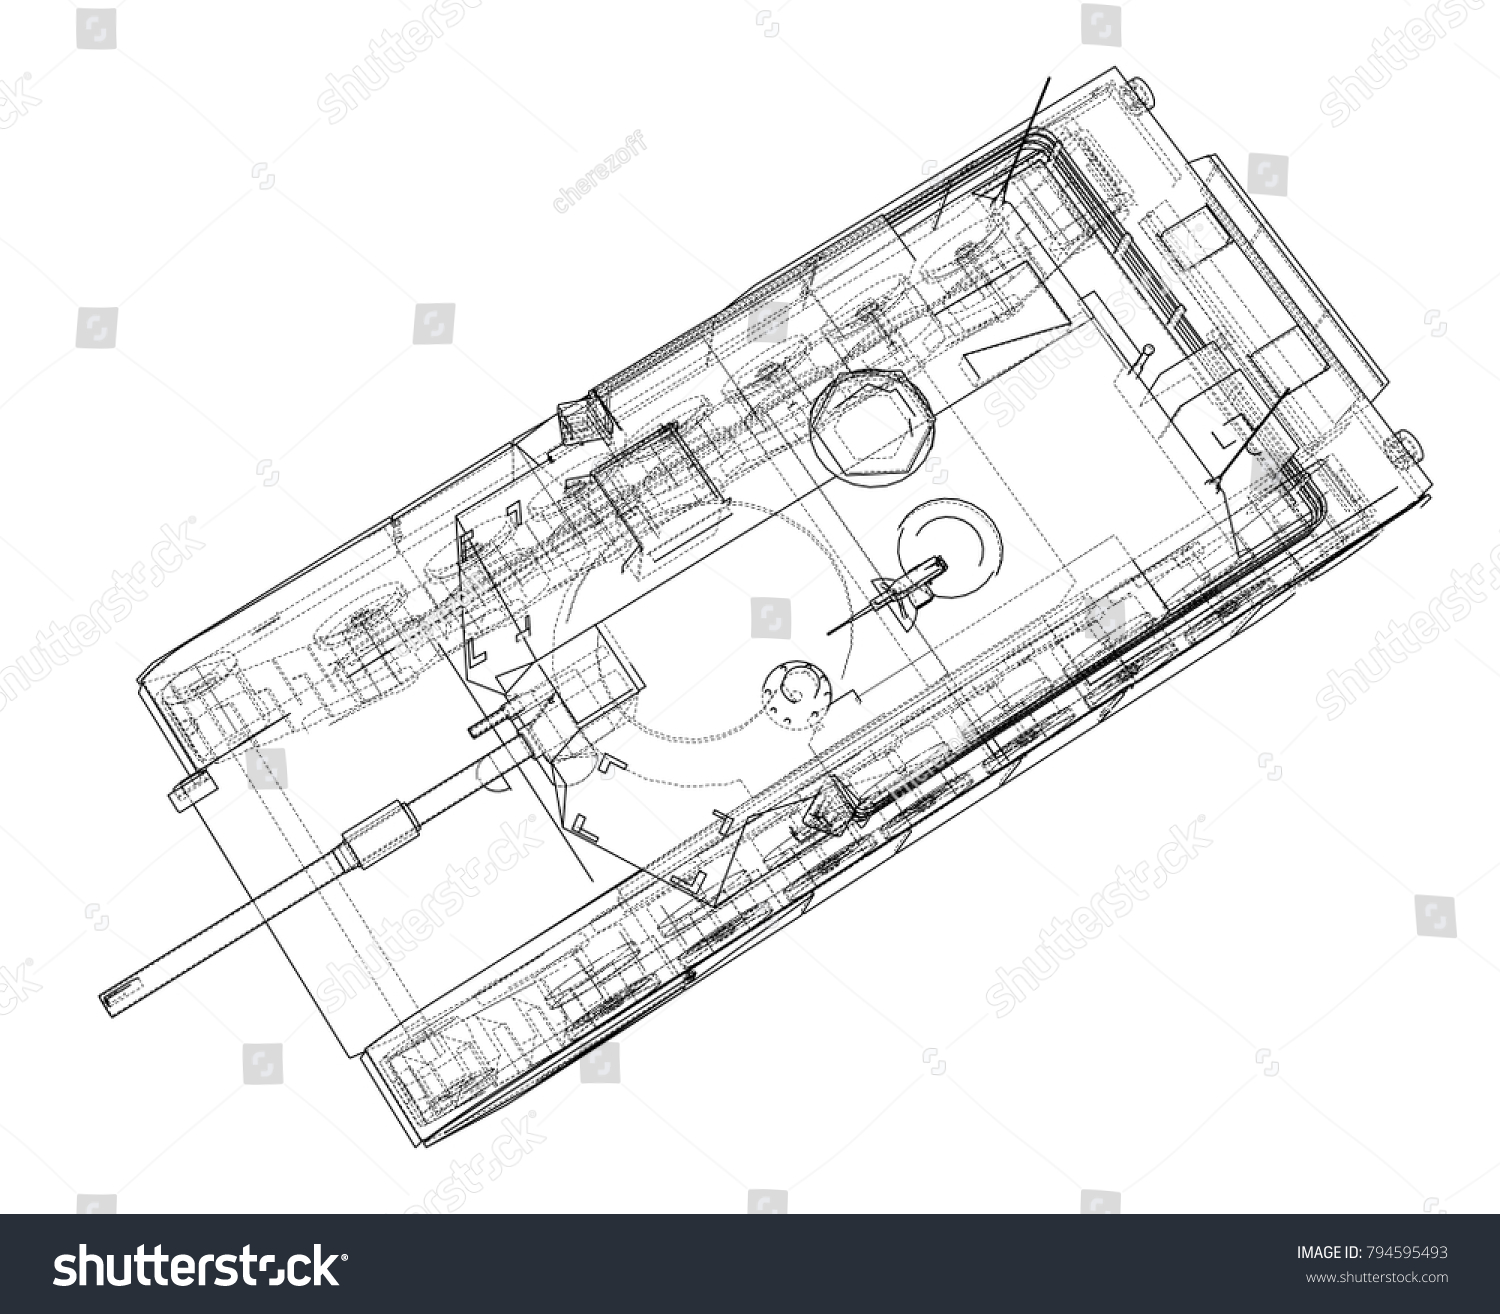 Blueprint realistic tank vector eps10 format stock vector 794595493 blueprint of realistic tank vector eps10 format rendering of 3d malvernweather Image collections